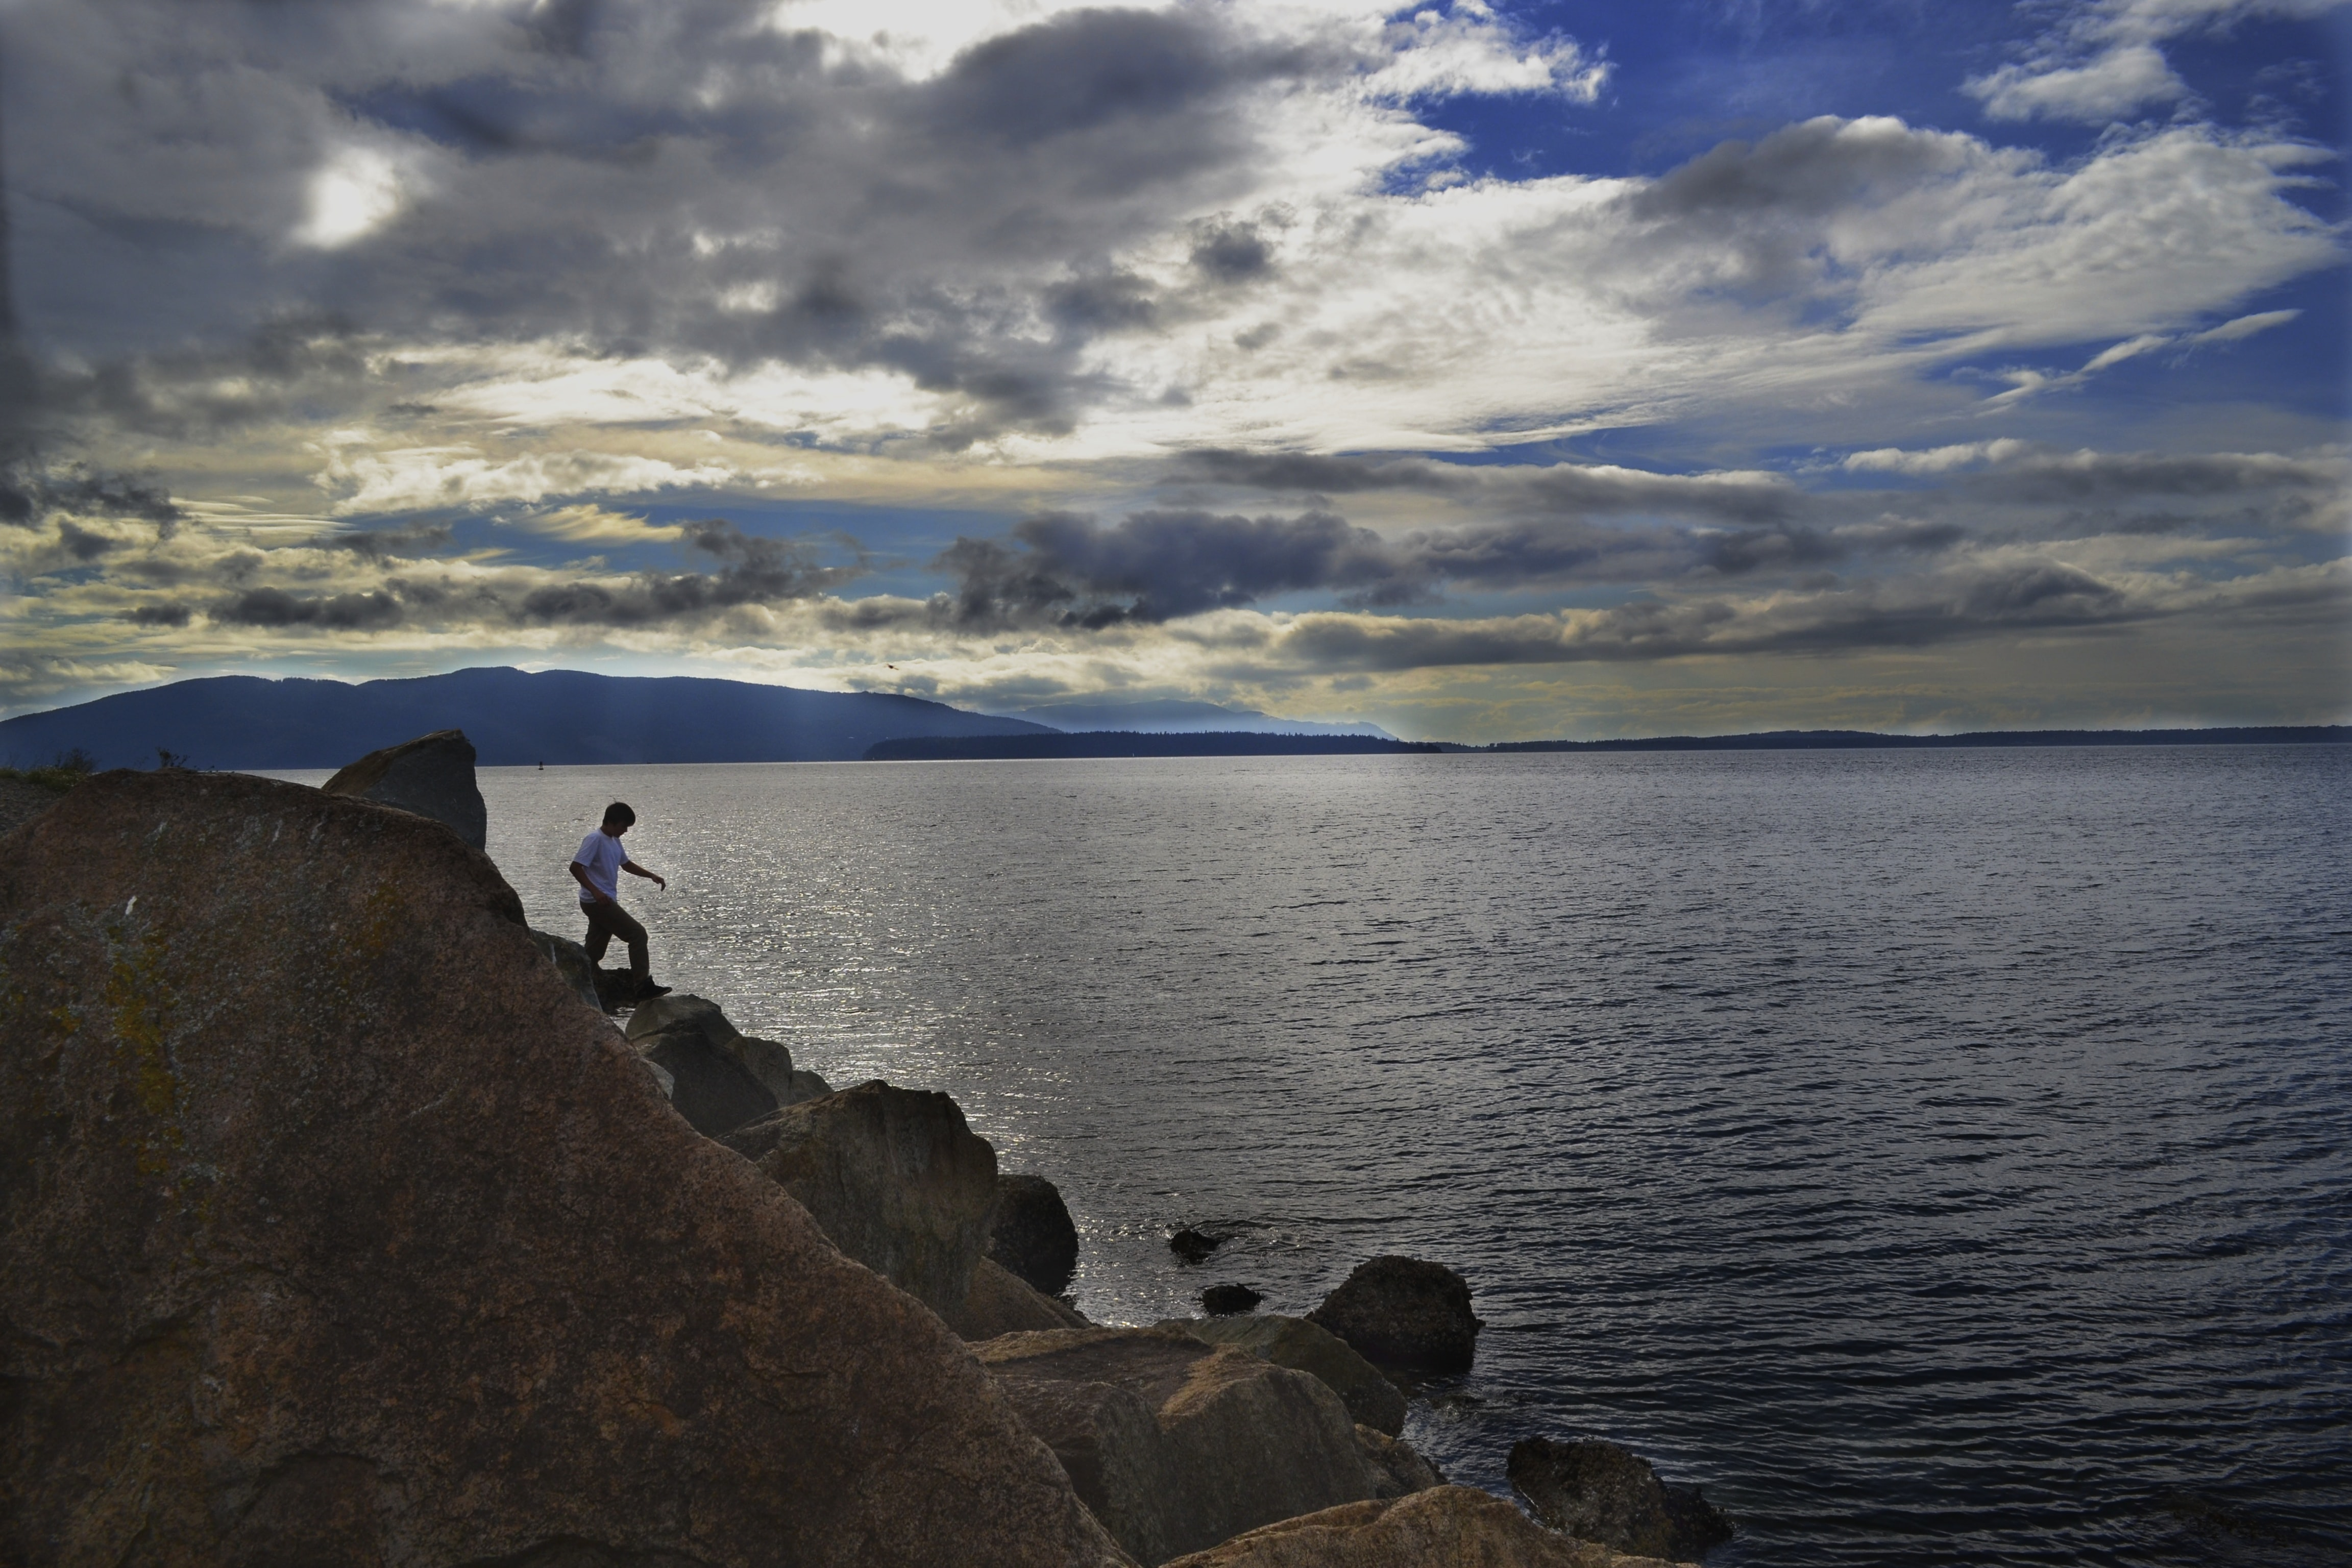 A man climbing down large rocks on the shore of a lake